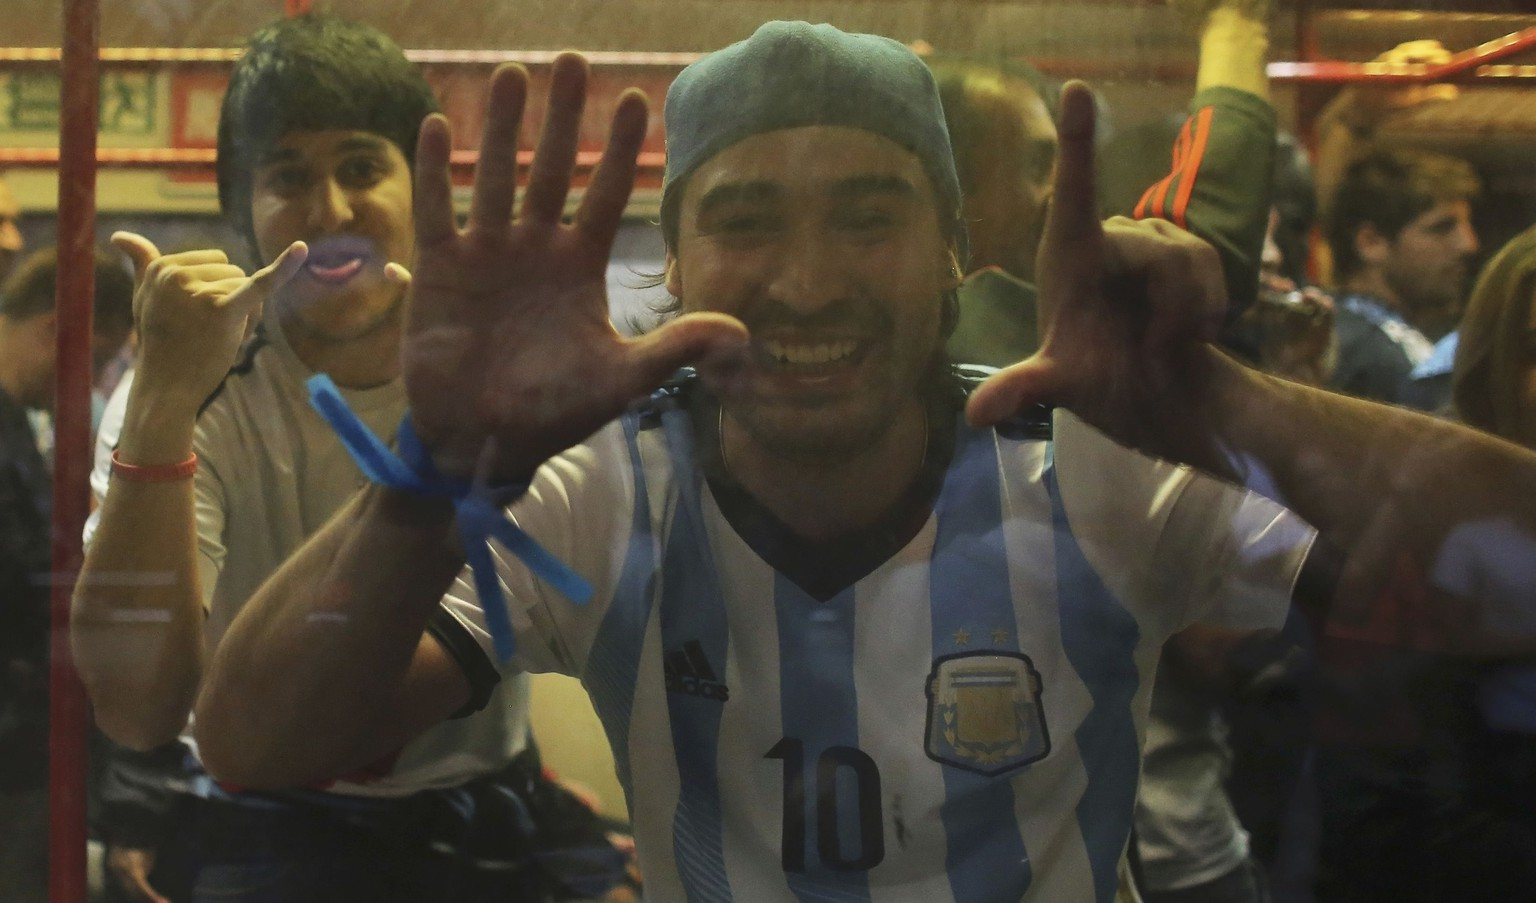 An Argentina fan shows